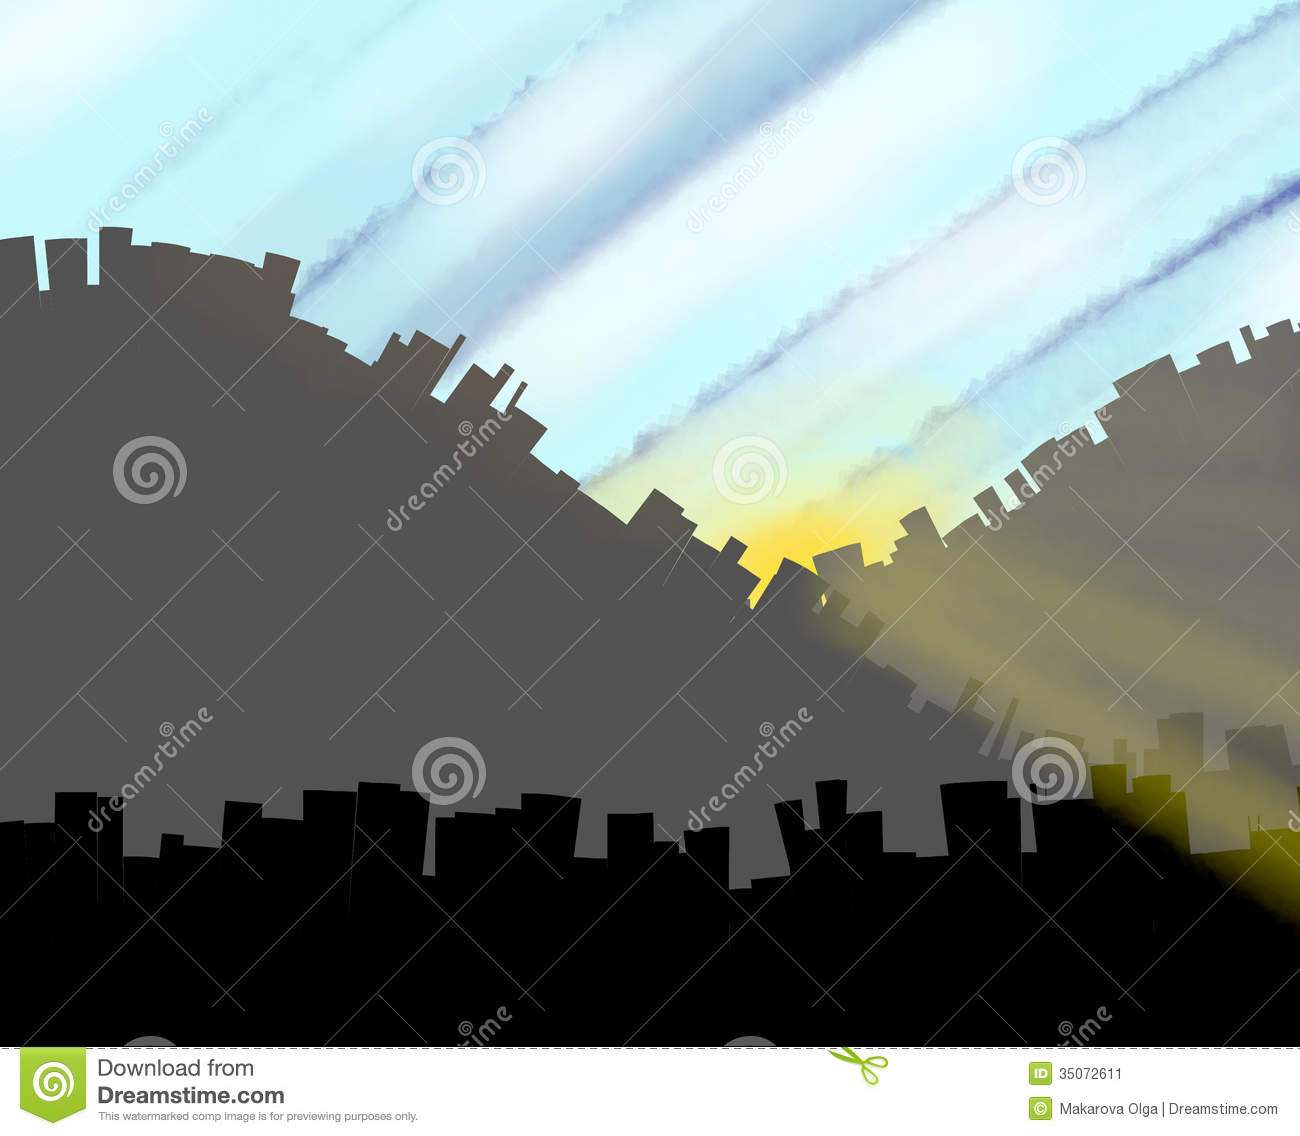 Good weather clip art cartoon city at dawn stock